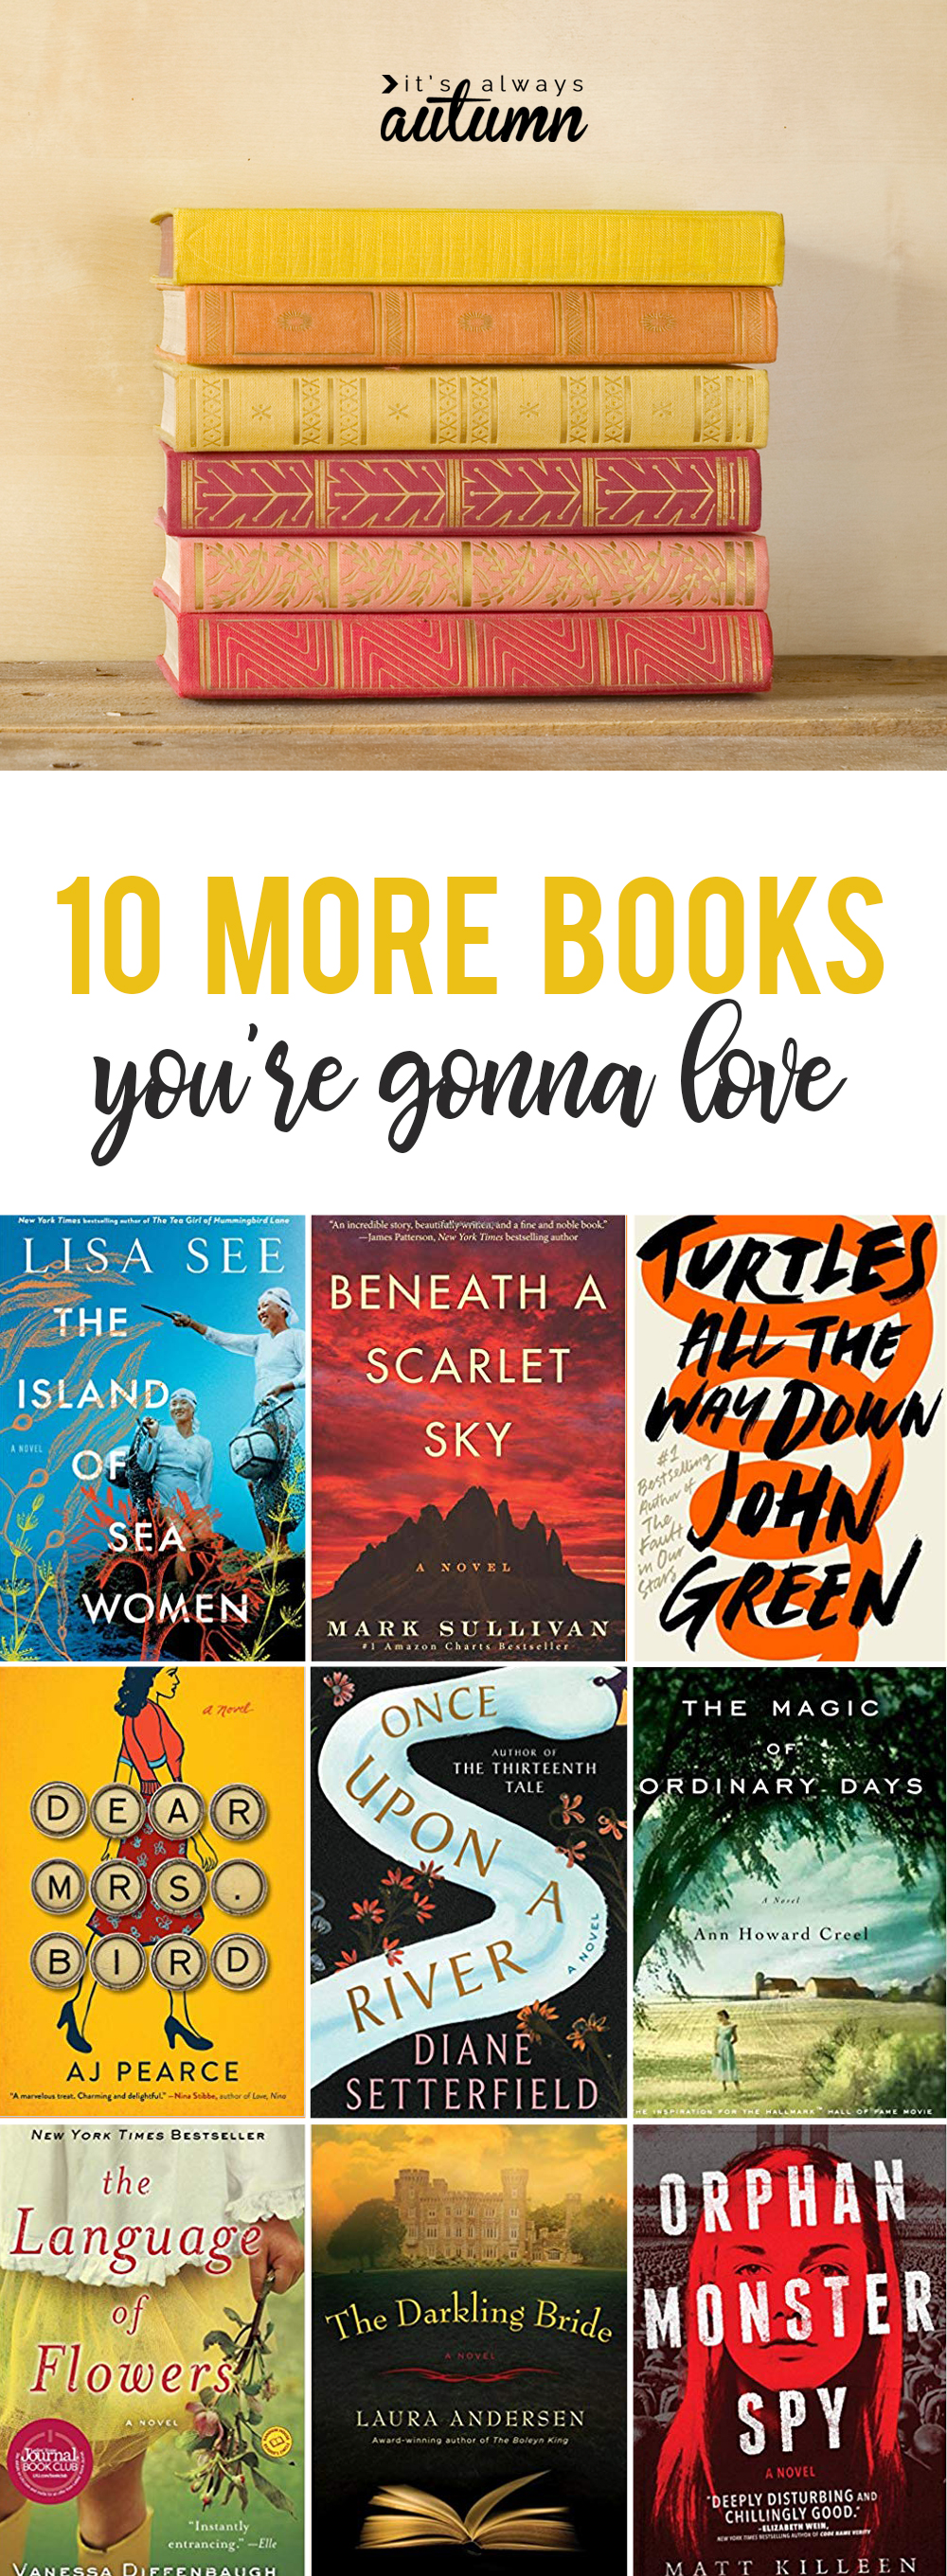 10 novels you're gonna love! Another fantastic book list.